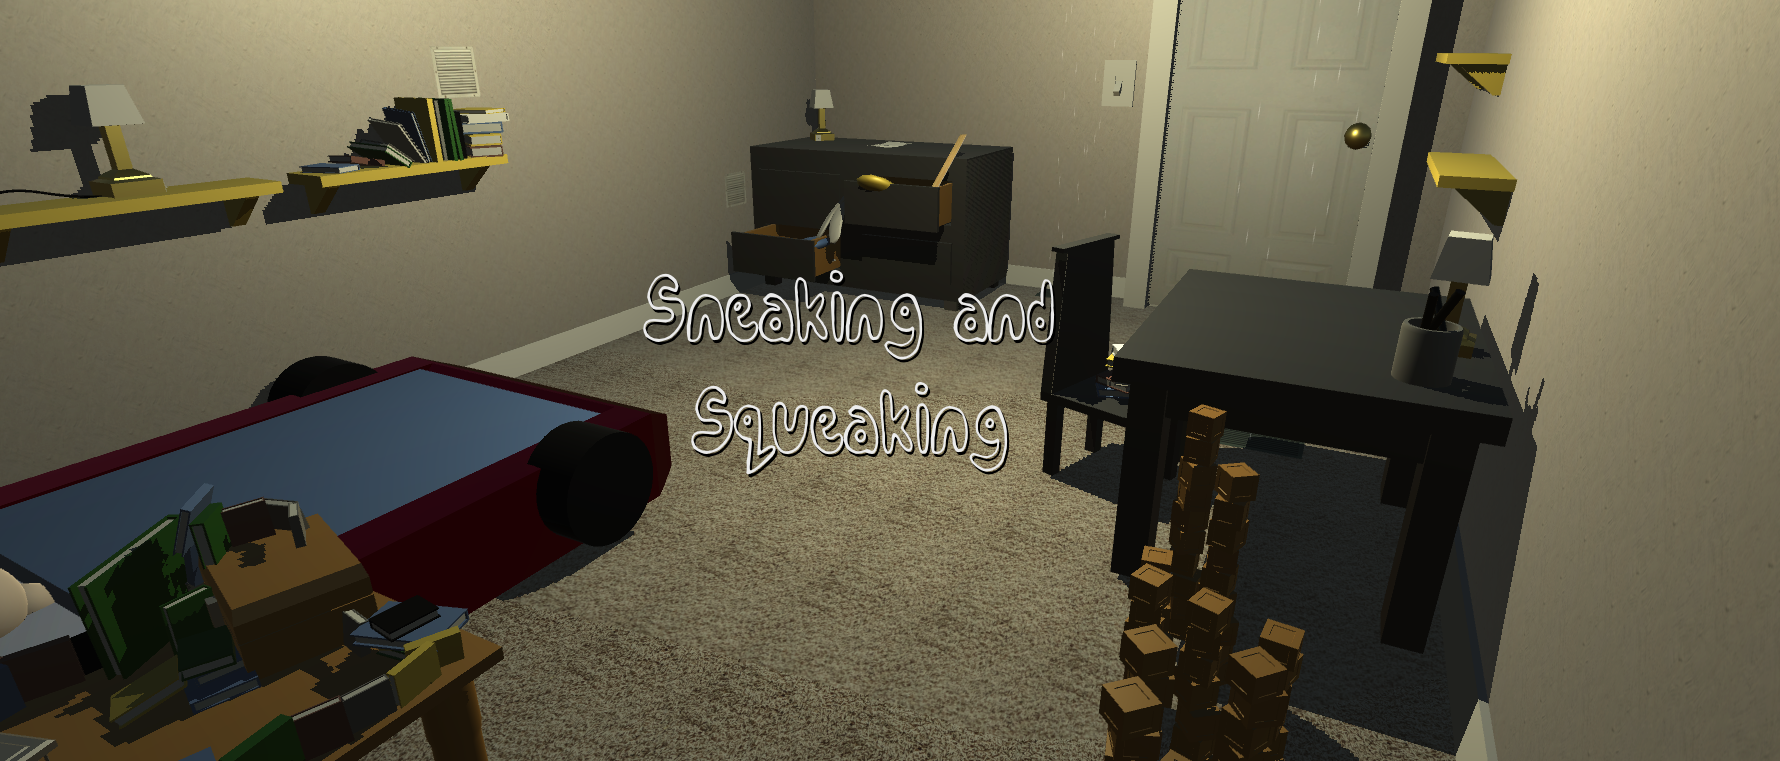 Sneaking and Squeaking (LD37)